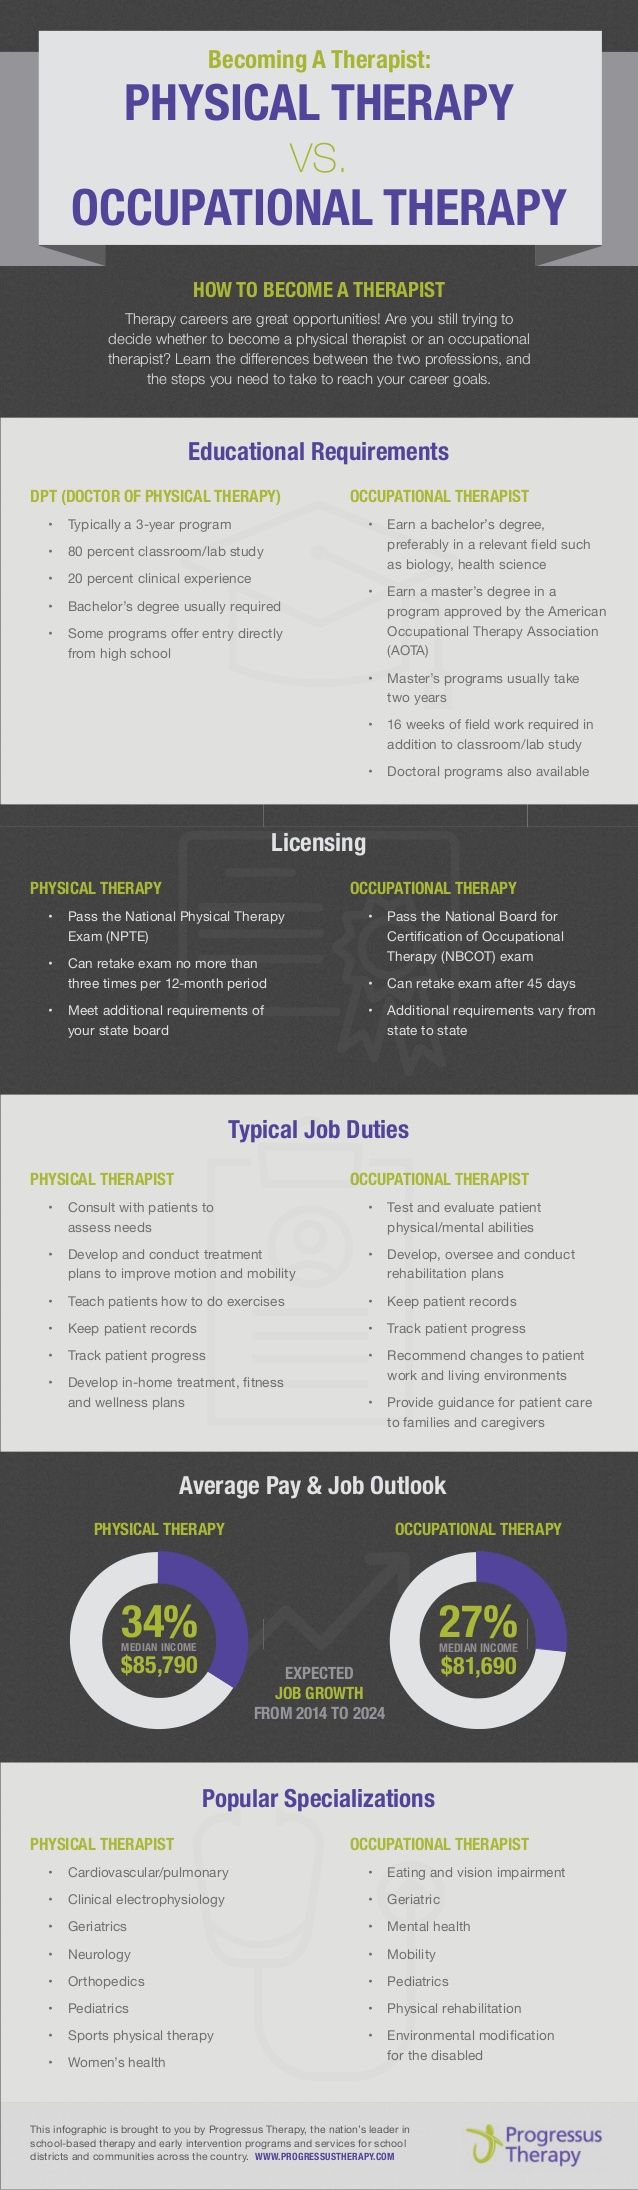 Careers in physical therapy - Becoming A Therapist Physical Therapy Vs Occupational